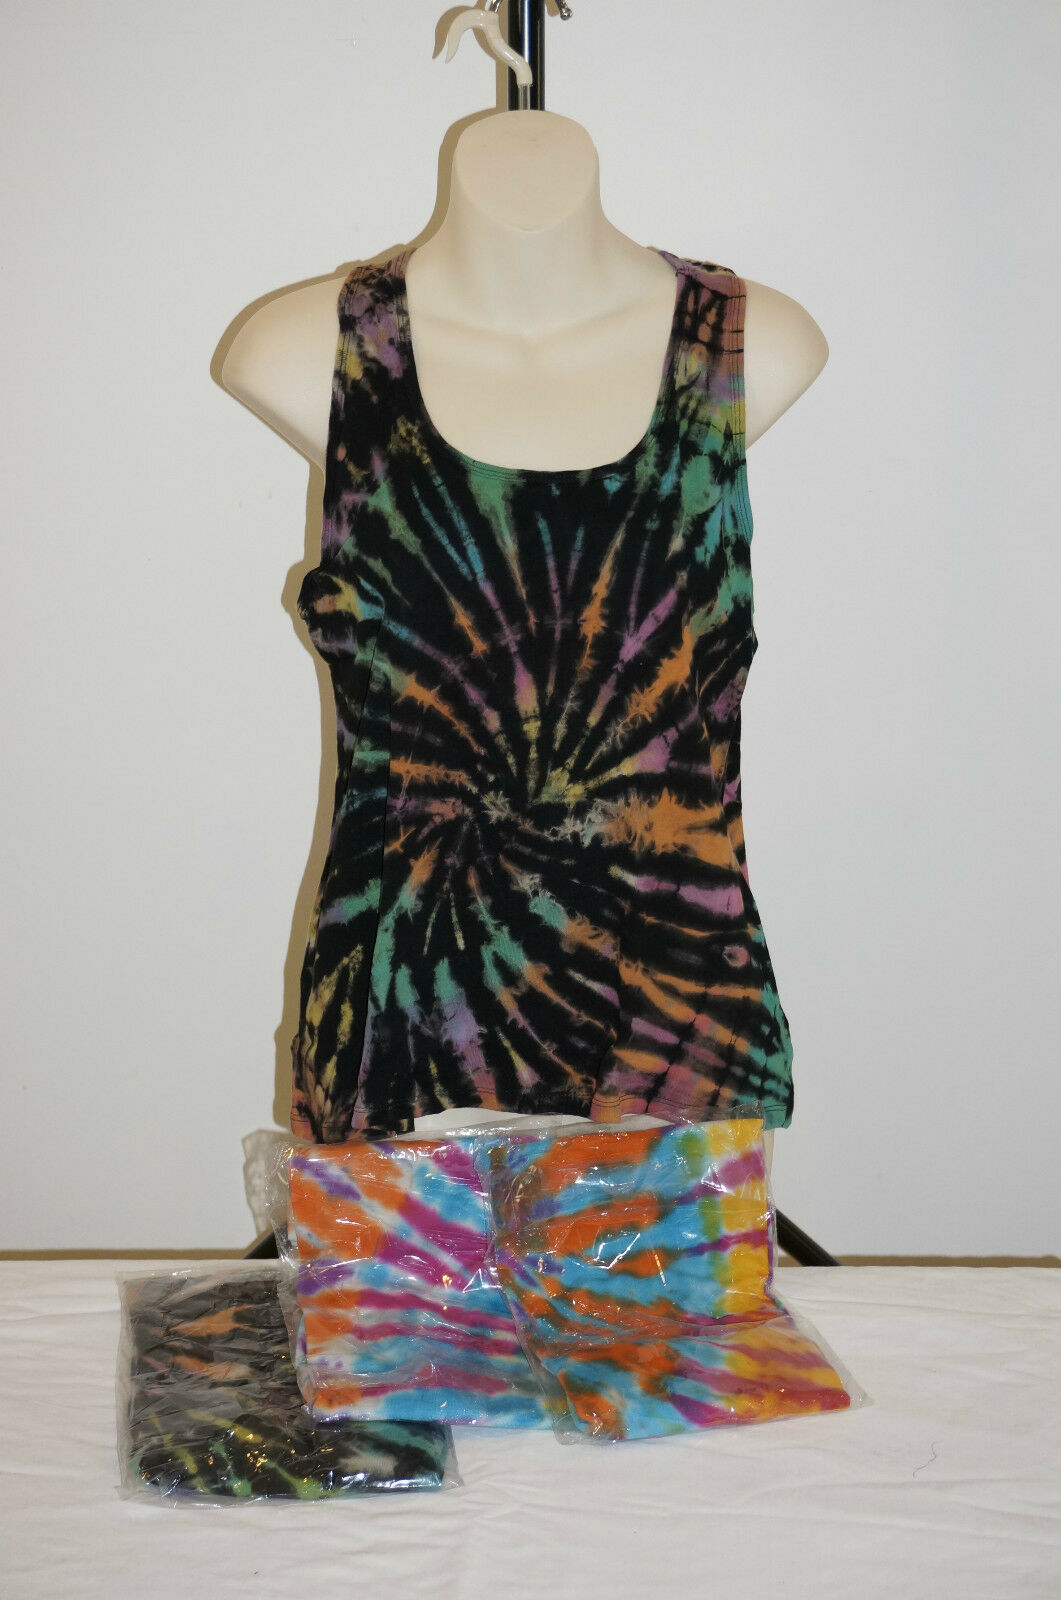 Singlet top shirt Tie dye hippie rainbow Nepal beach wear casual cotton 10-12